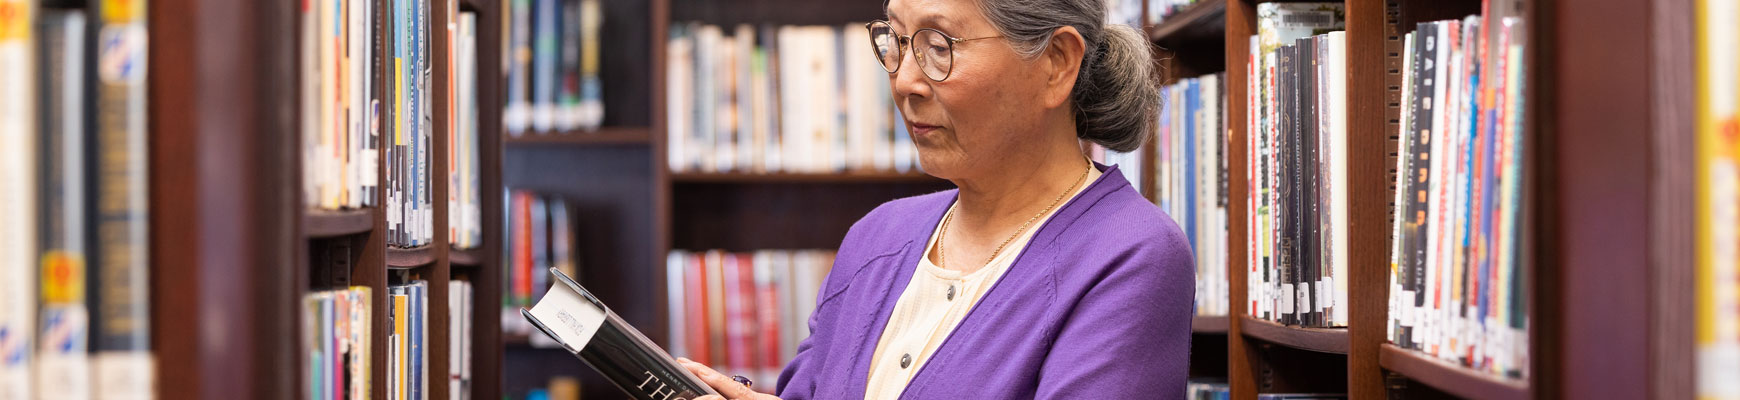 A senior woman looks at a book taken from the shelf in the community library